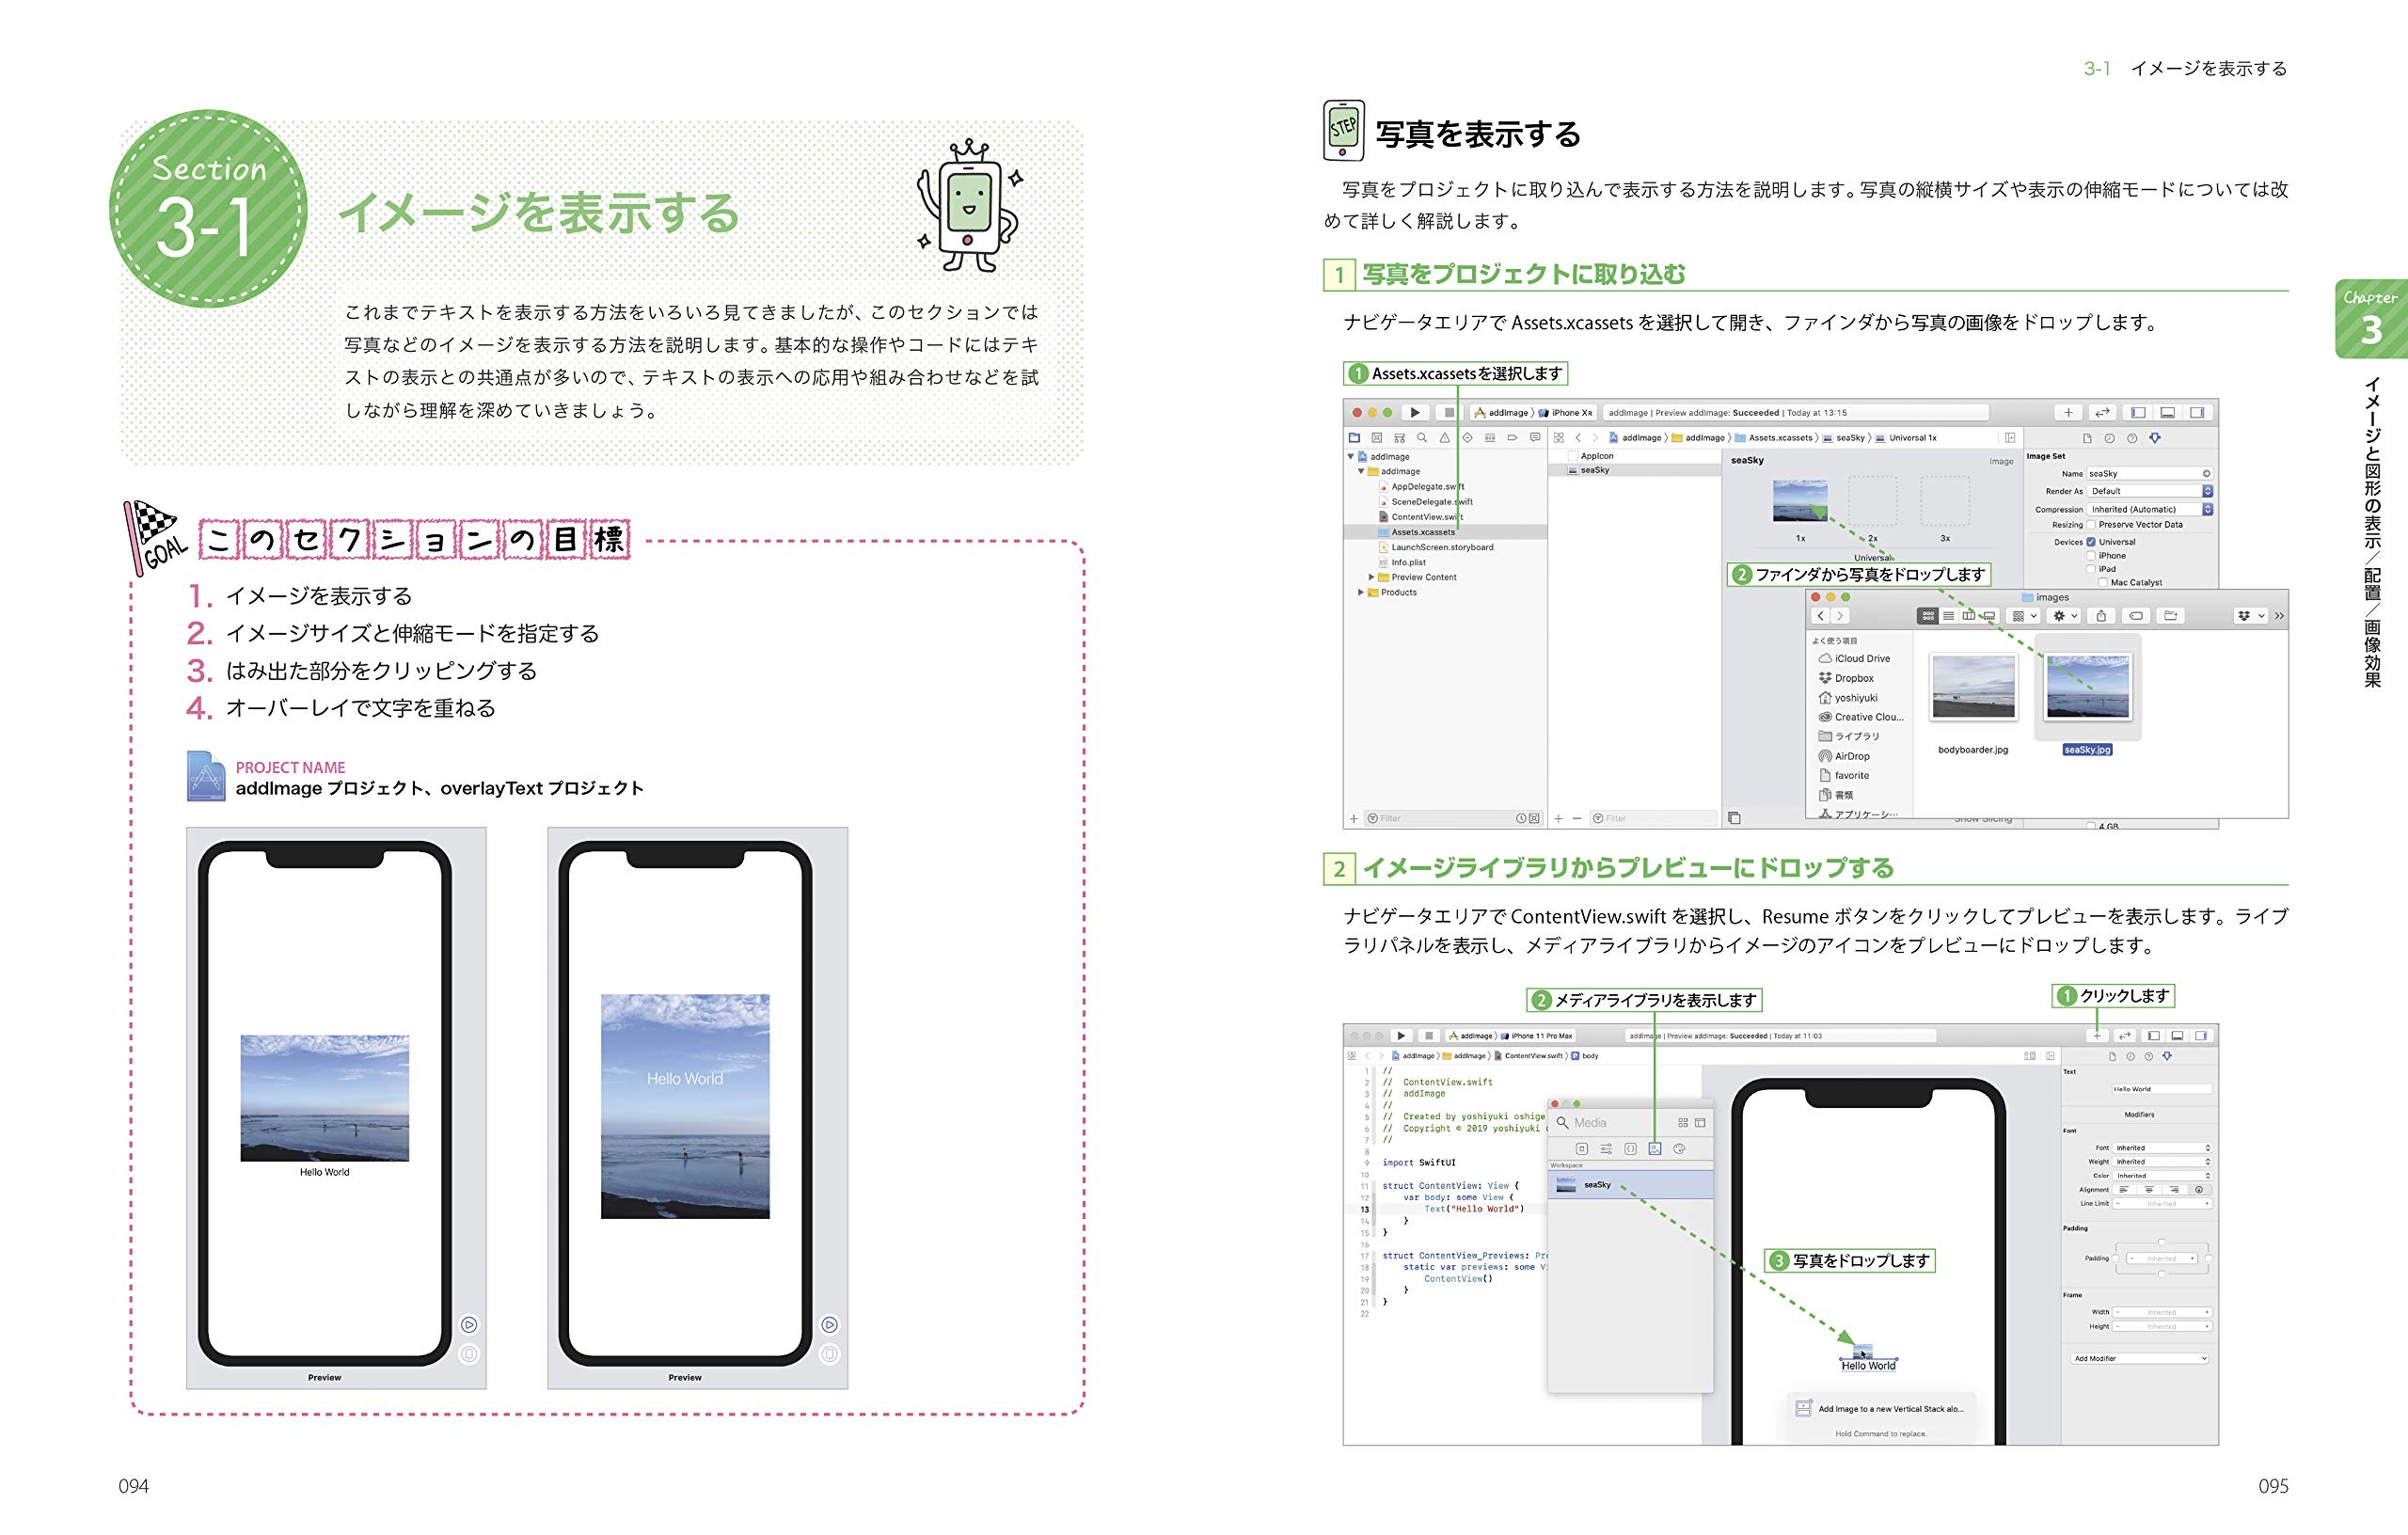 Thumbnail of 詳細! SwiftUI iPhoneアプリ開発入門ノート iOS 13 + Xcode11対応1$